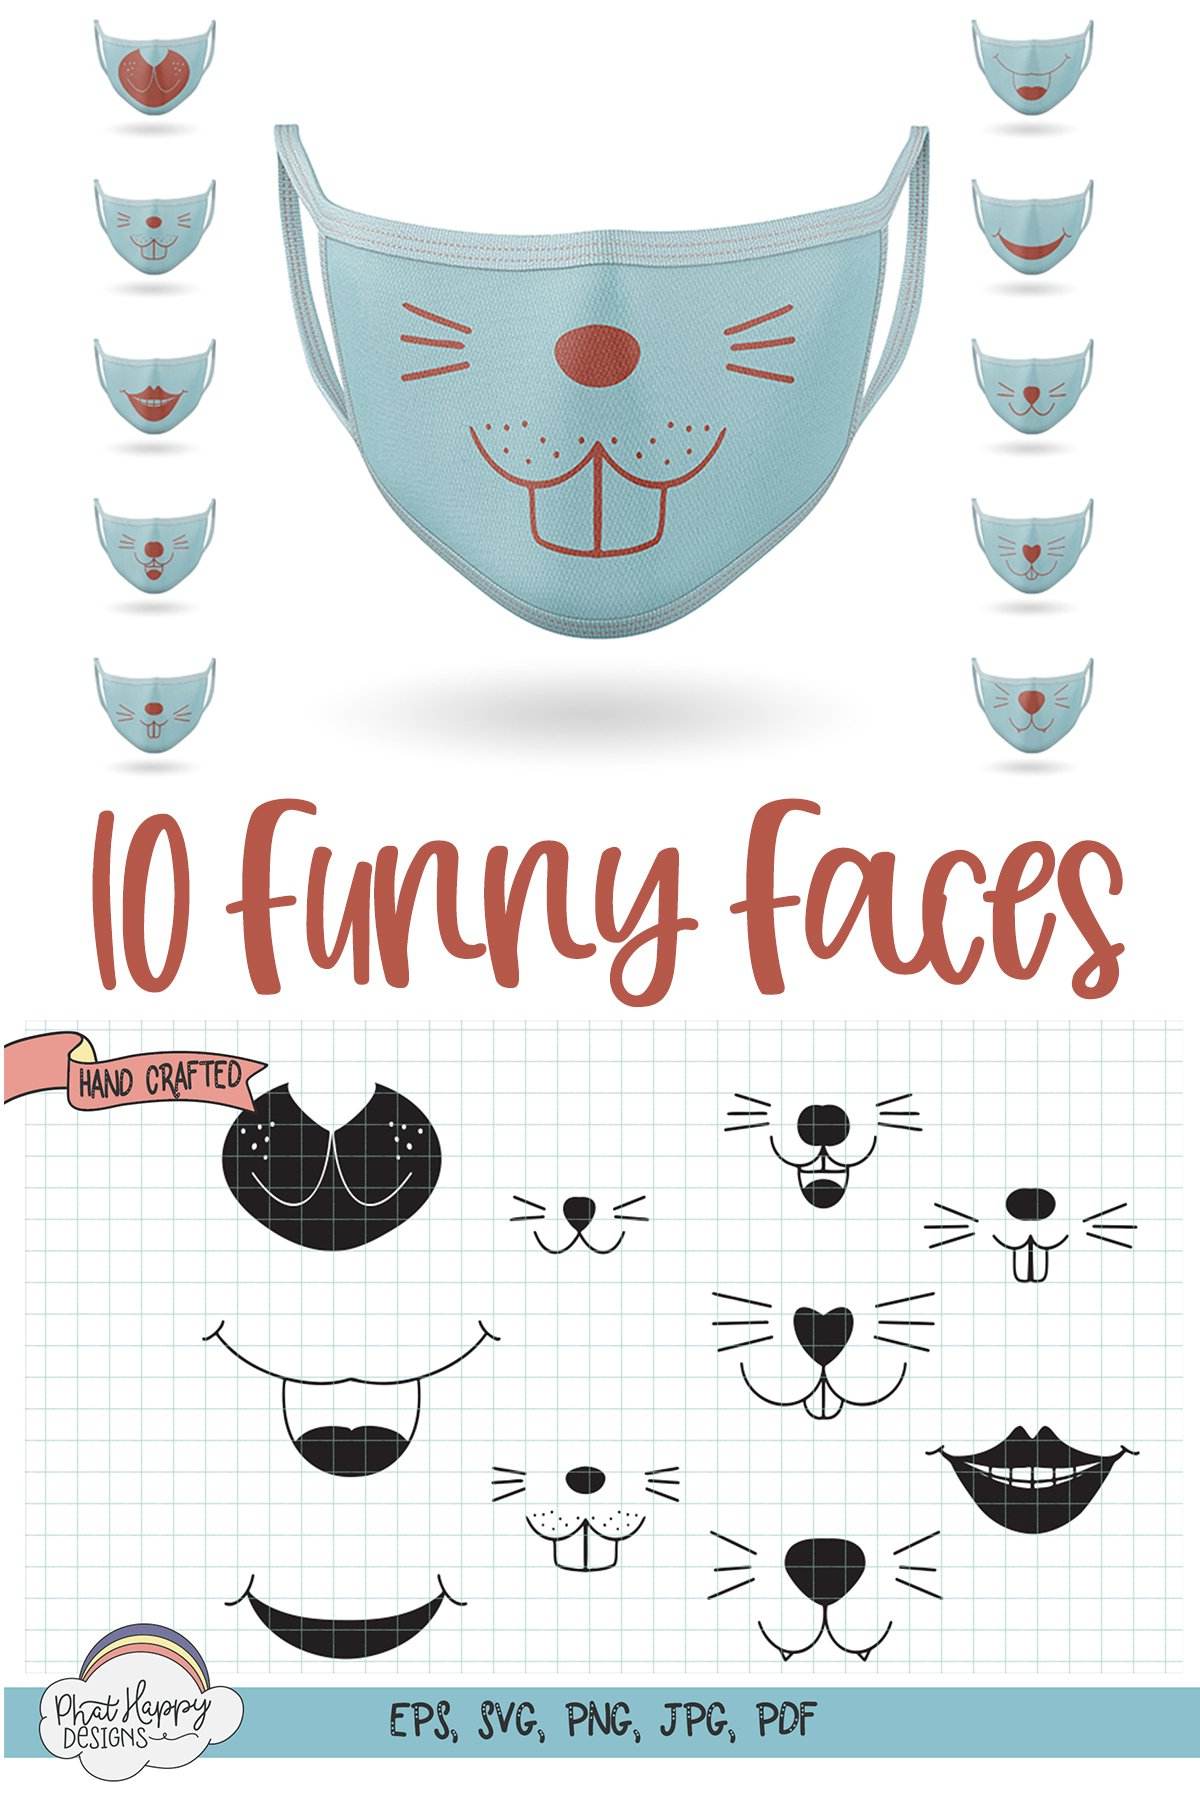 10 Funny Faces for Masks - SVG Cut Files example image 13